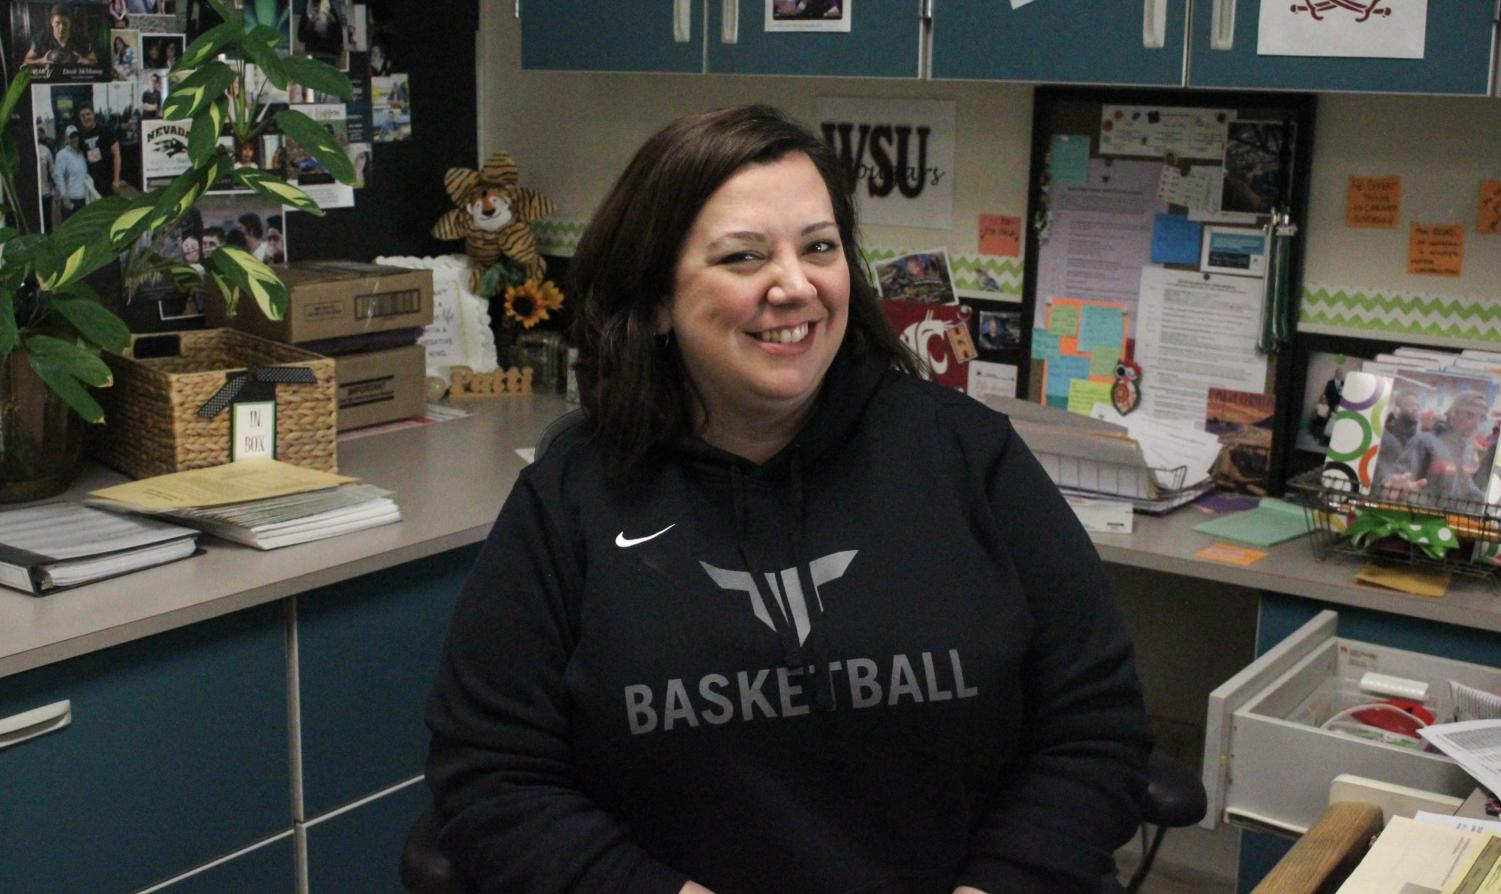 Patti Mason always has a smile for students. She found her place at Tigard.